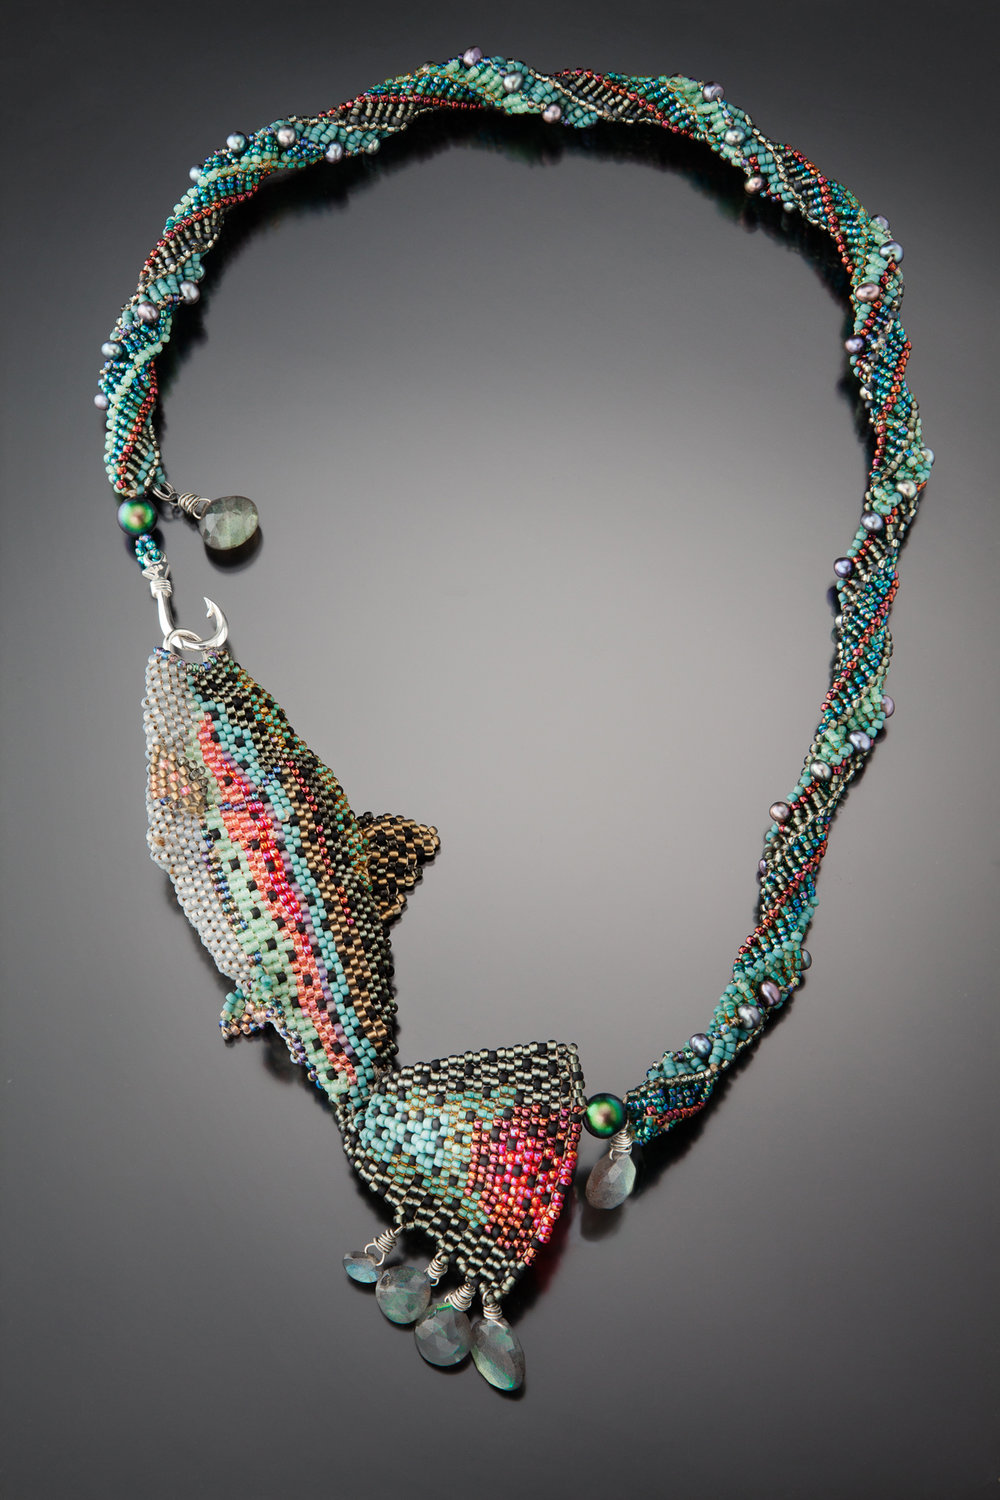 1-karin-alisa-houben-rainbow-trout-necklace.jpg